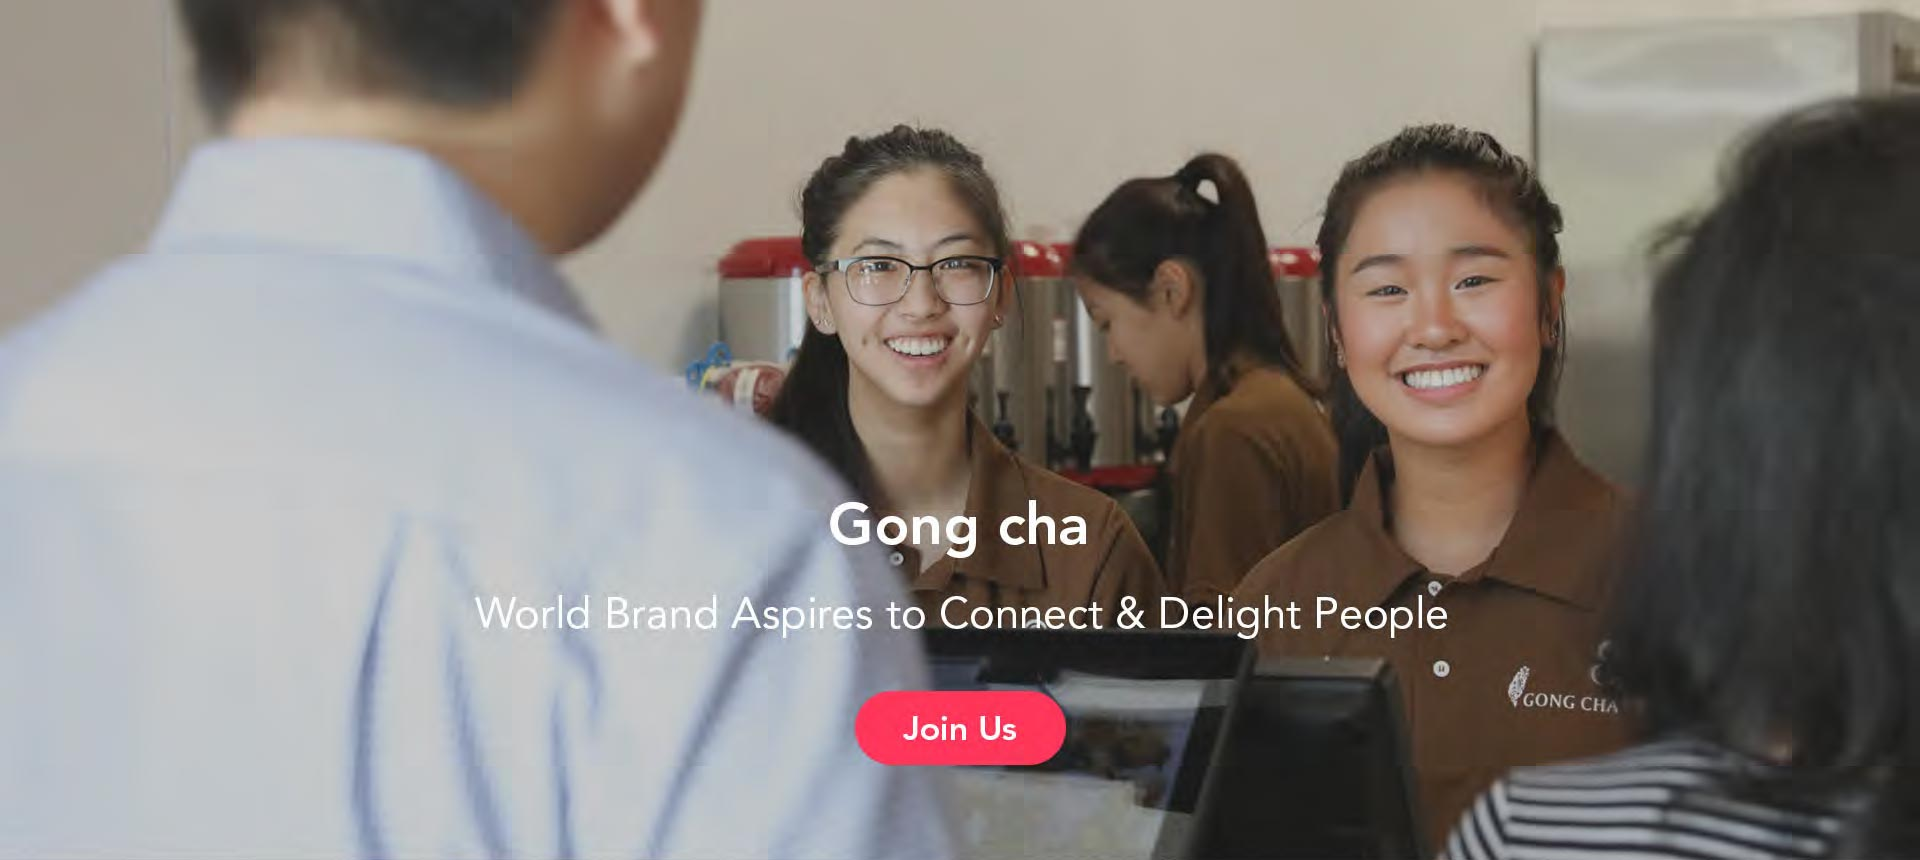 Gong cha World Brand Aspires to Connect & Delight People - Join Us